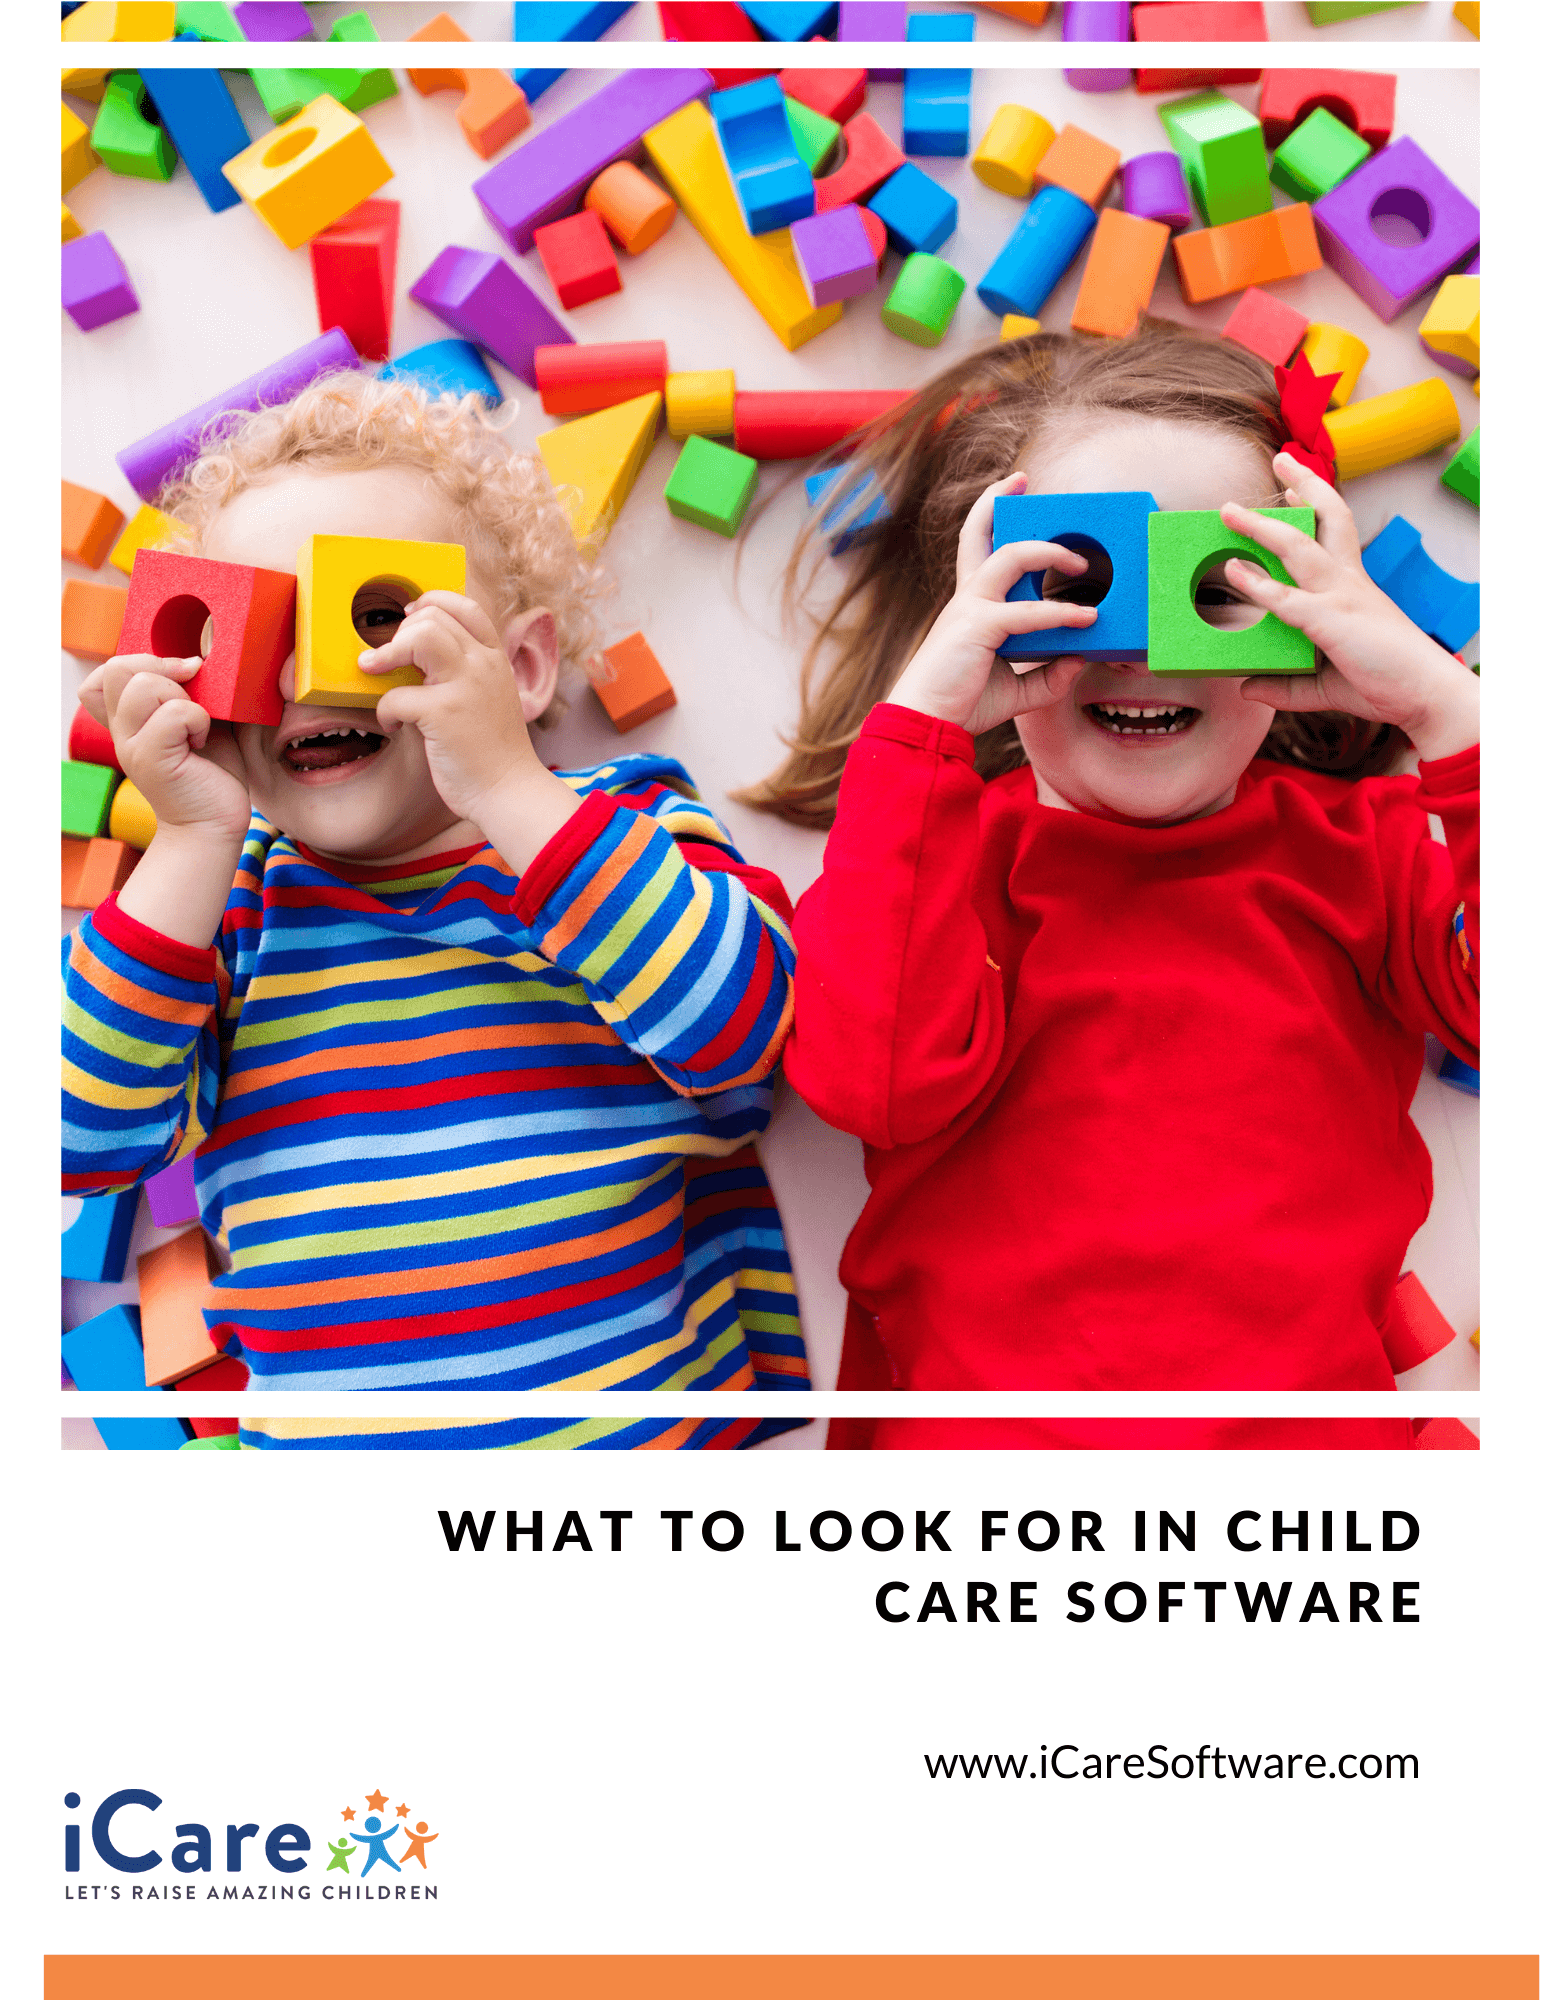 Image showing the cover of the eBook What to Look for in Child Care Software